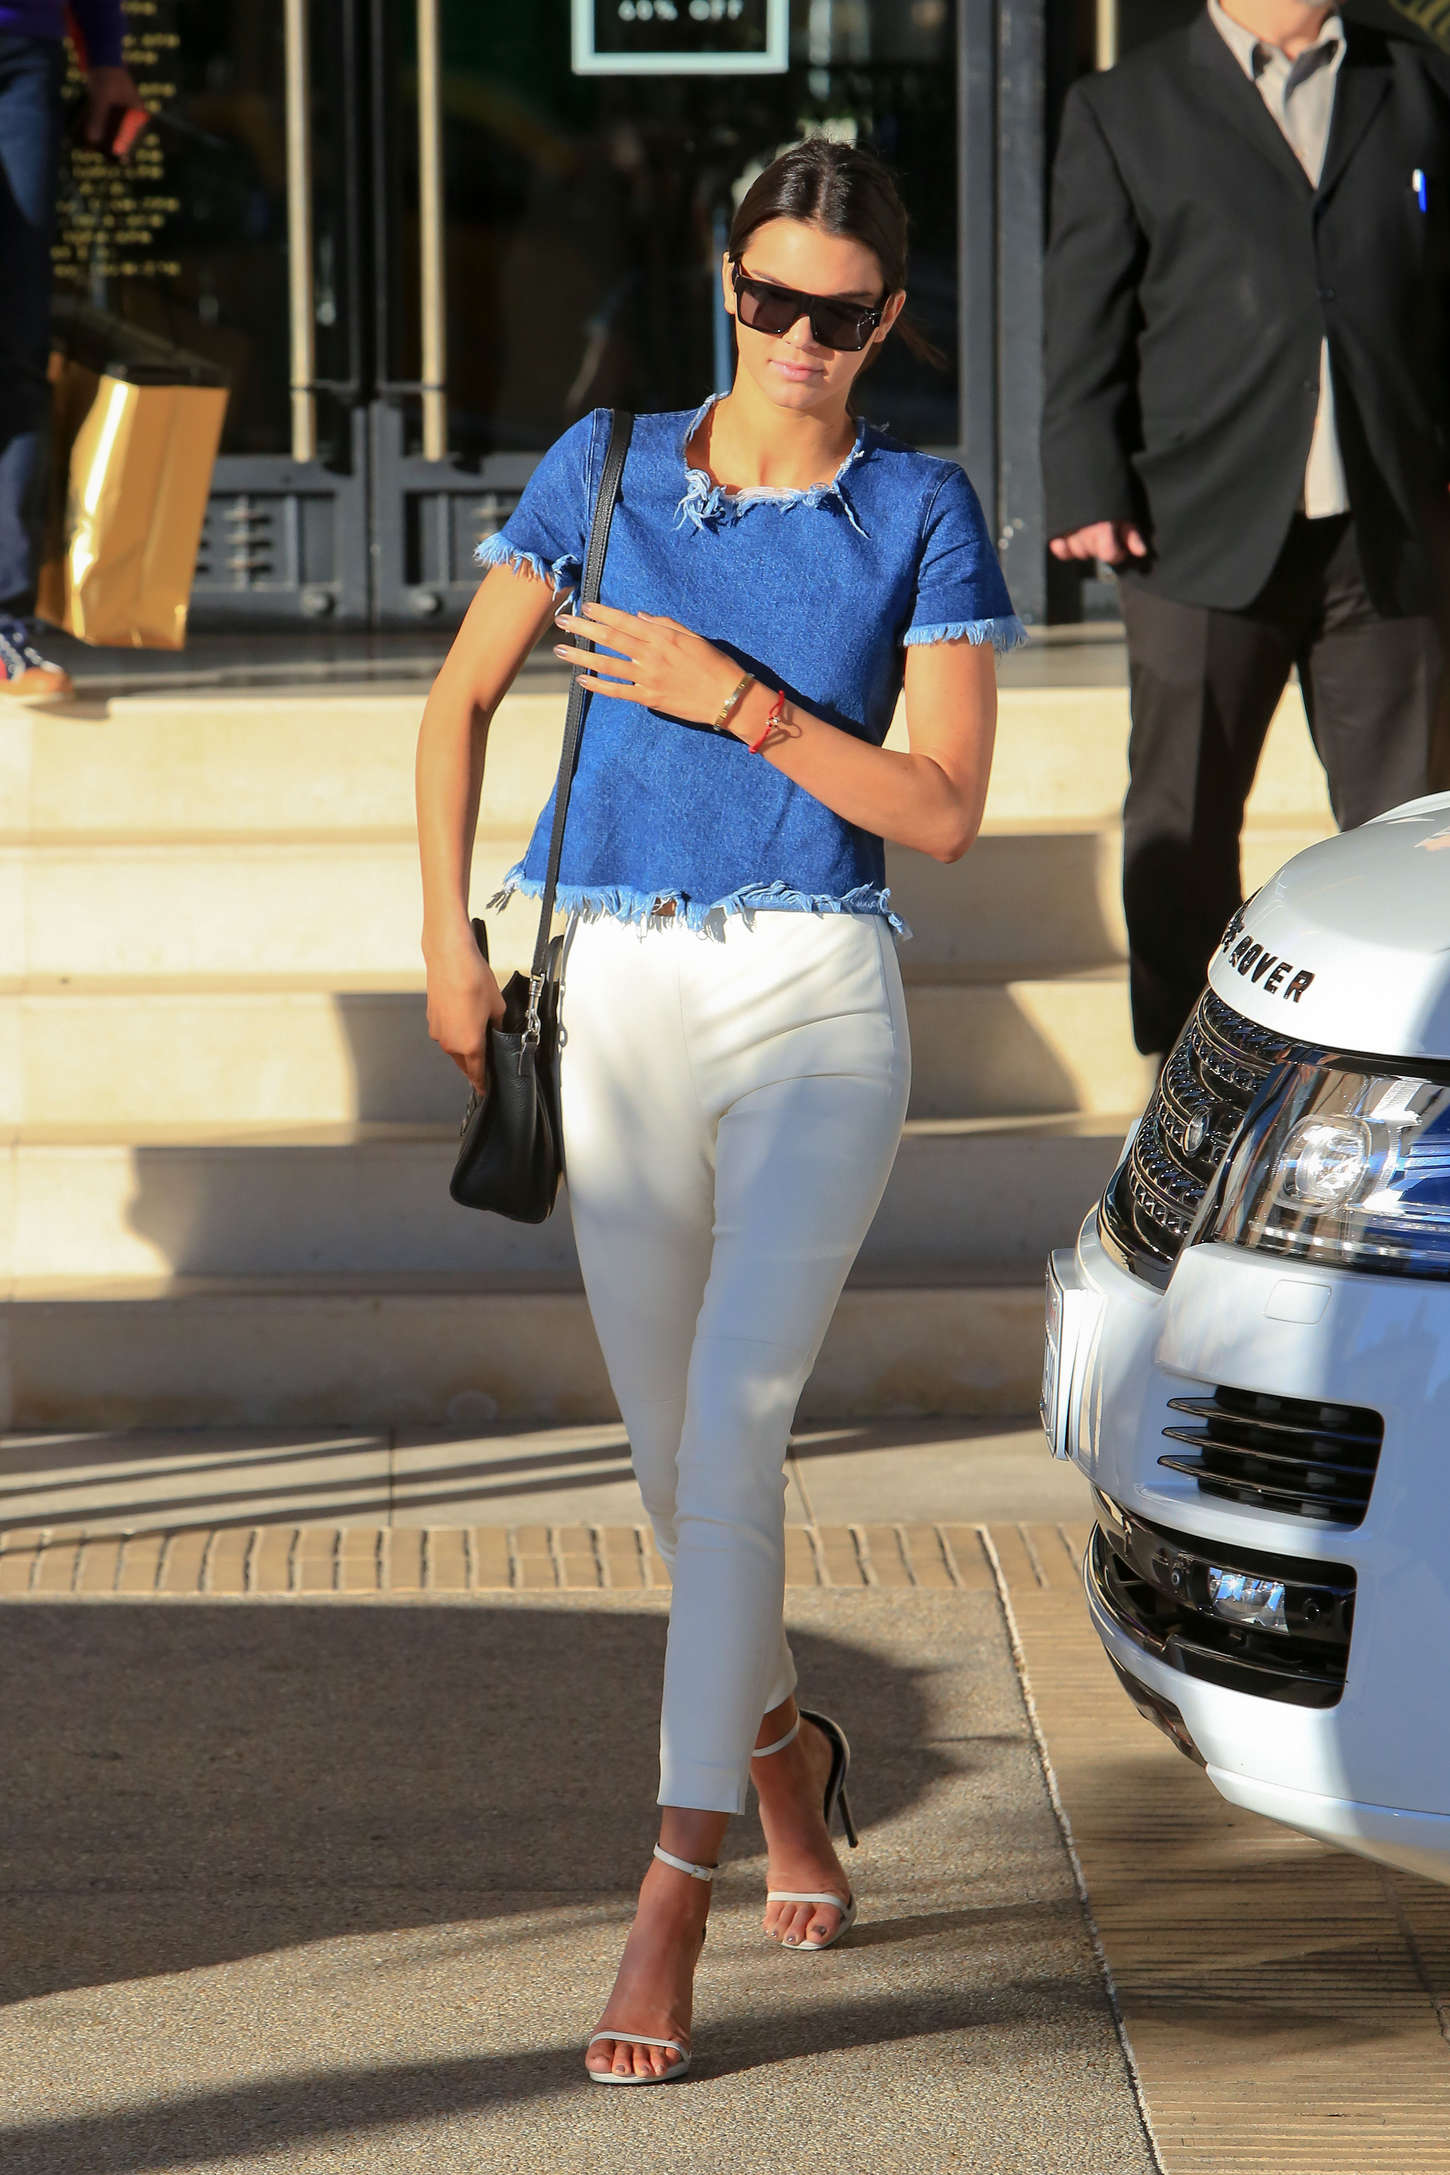 Kendall Jenner in Tight White Pants -30 - GotCeleb